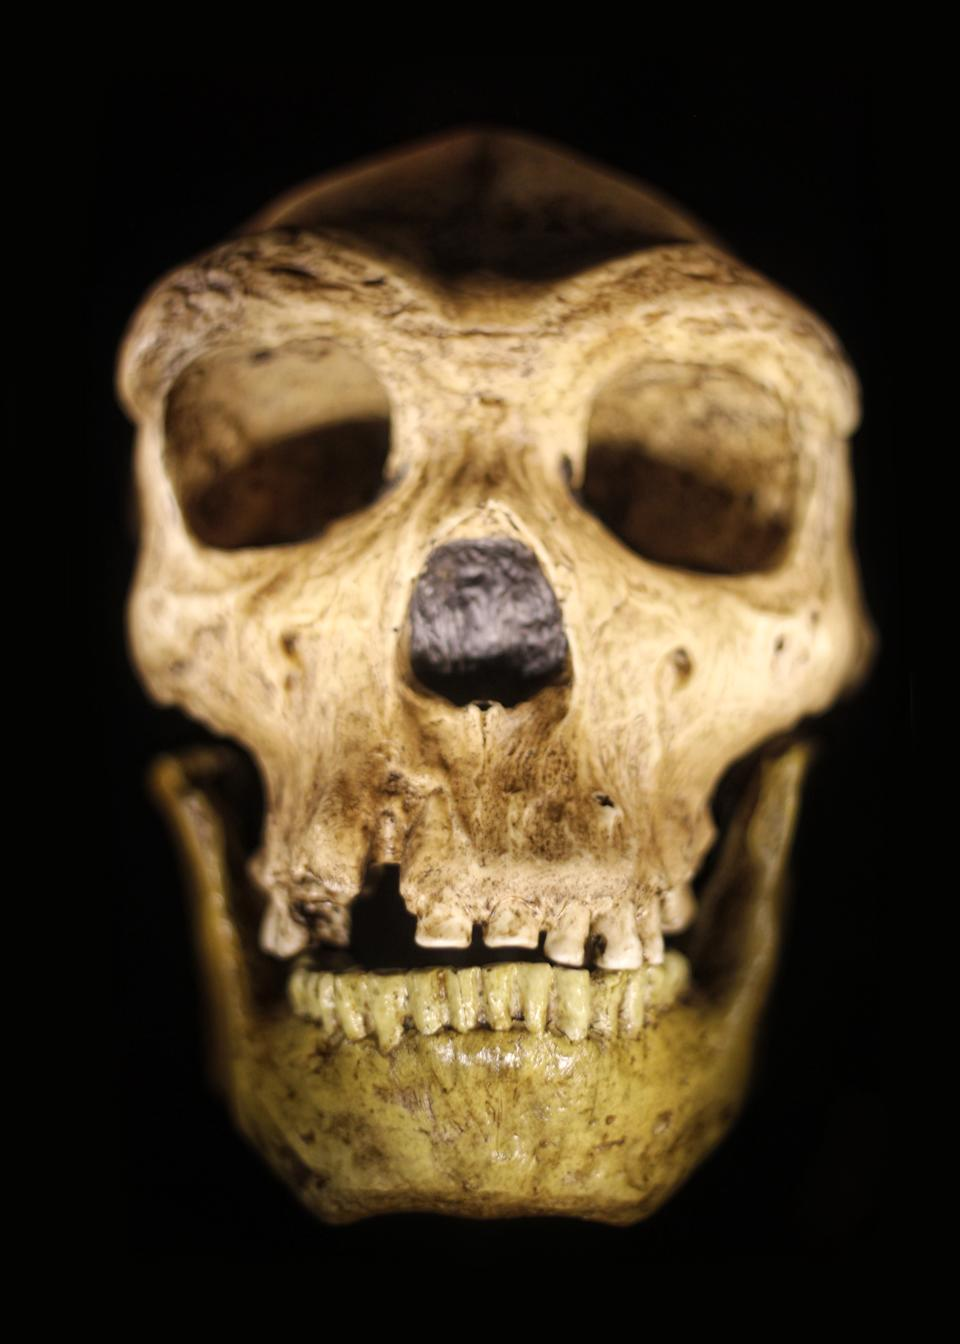 This photo was taken on a trip to an archaeology lab. This is a direct cast from a reconstructed Neanderthal skull. It's been lighted for dramatic effect and shot on a black background. This skull is not a sculpture, nor is it a commercial item or product, and is not copyrighted.